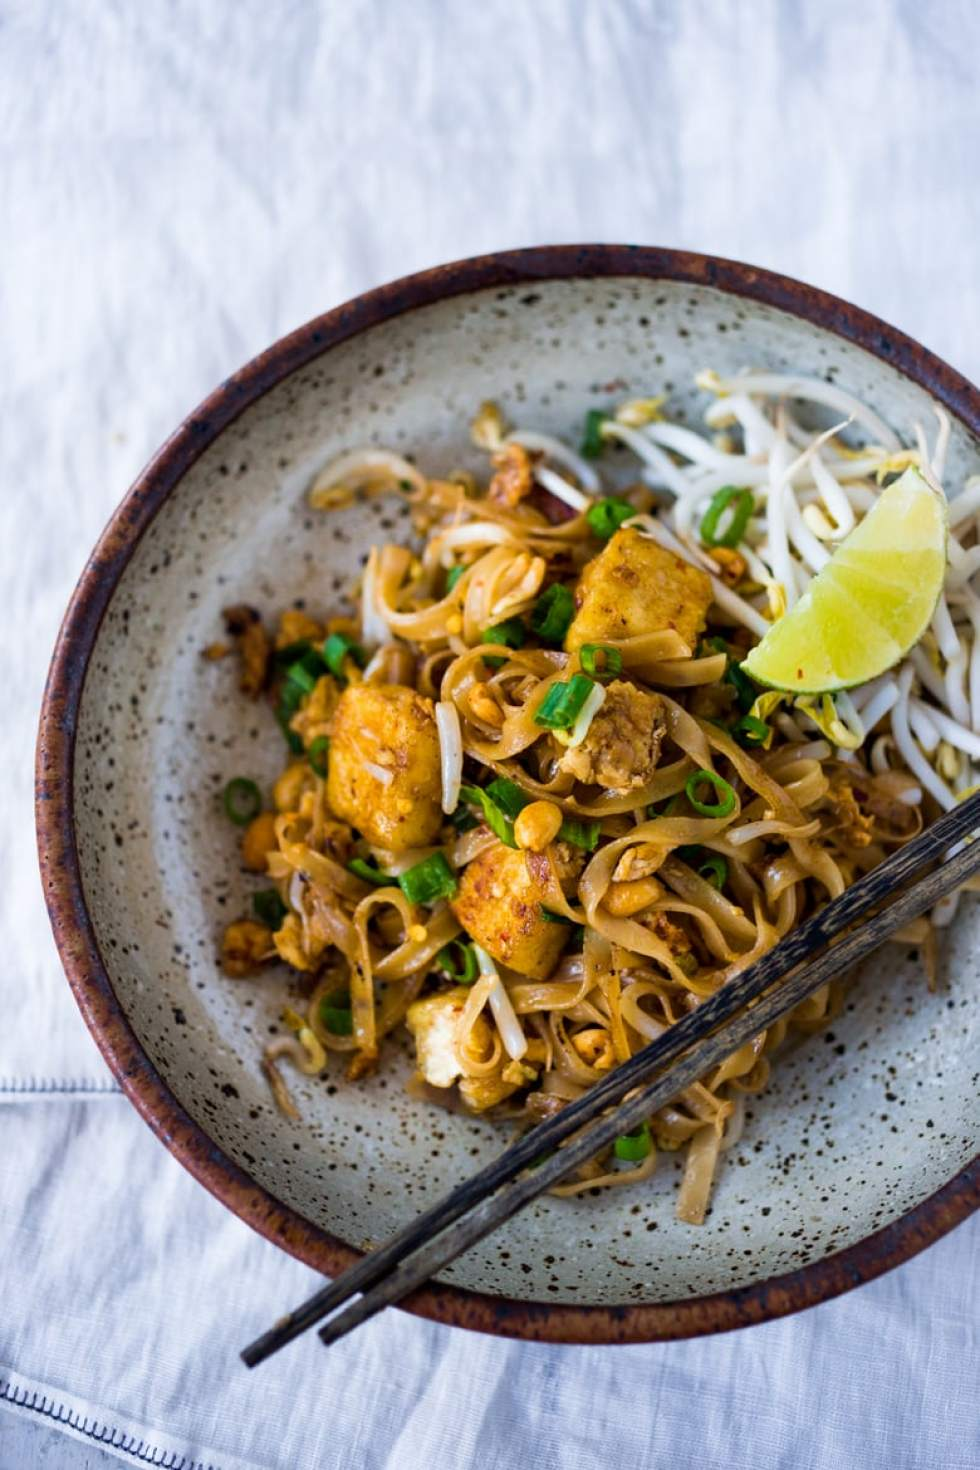 15 Minute PAD THAI + Plus 10 Warming THAI RECIPES to help take the chill out of winter | www.feastingathome.com